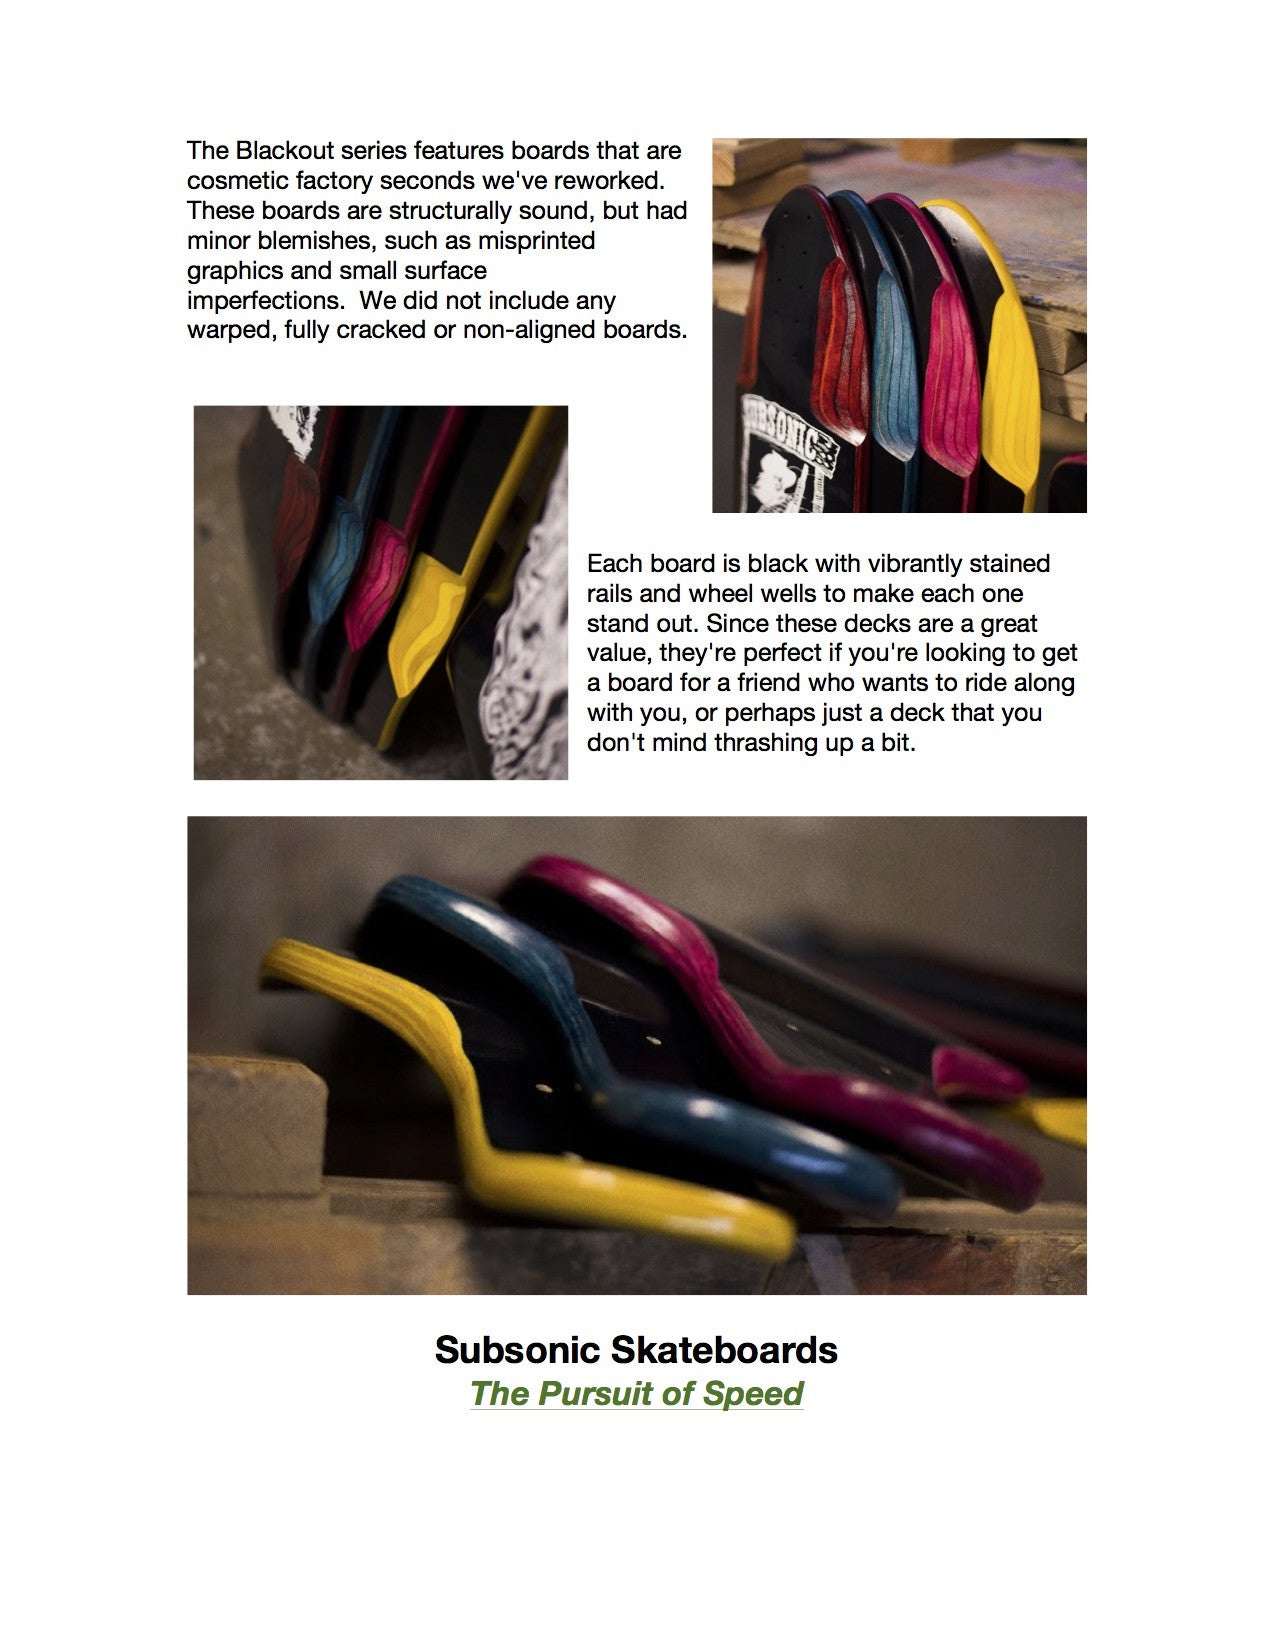 Subsonic Skateboards Blackout Series longboards